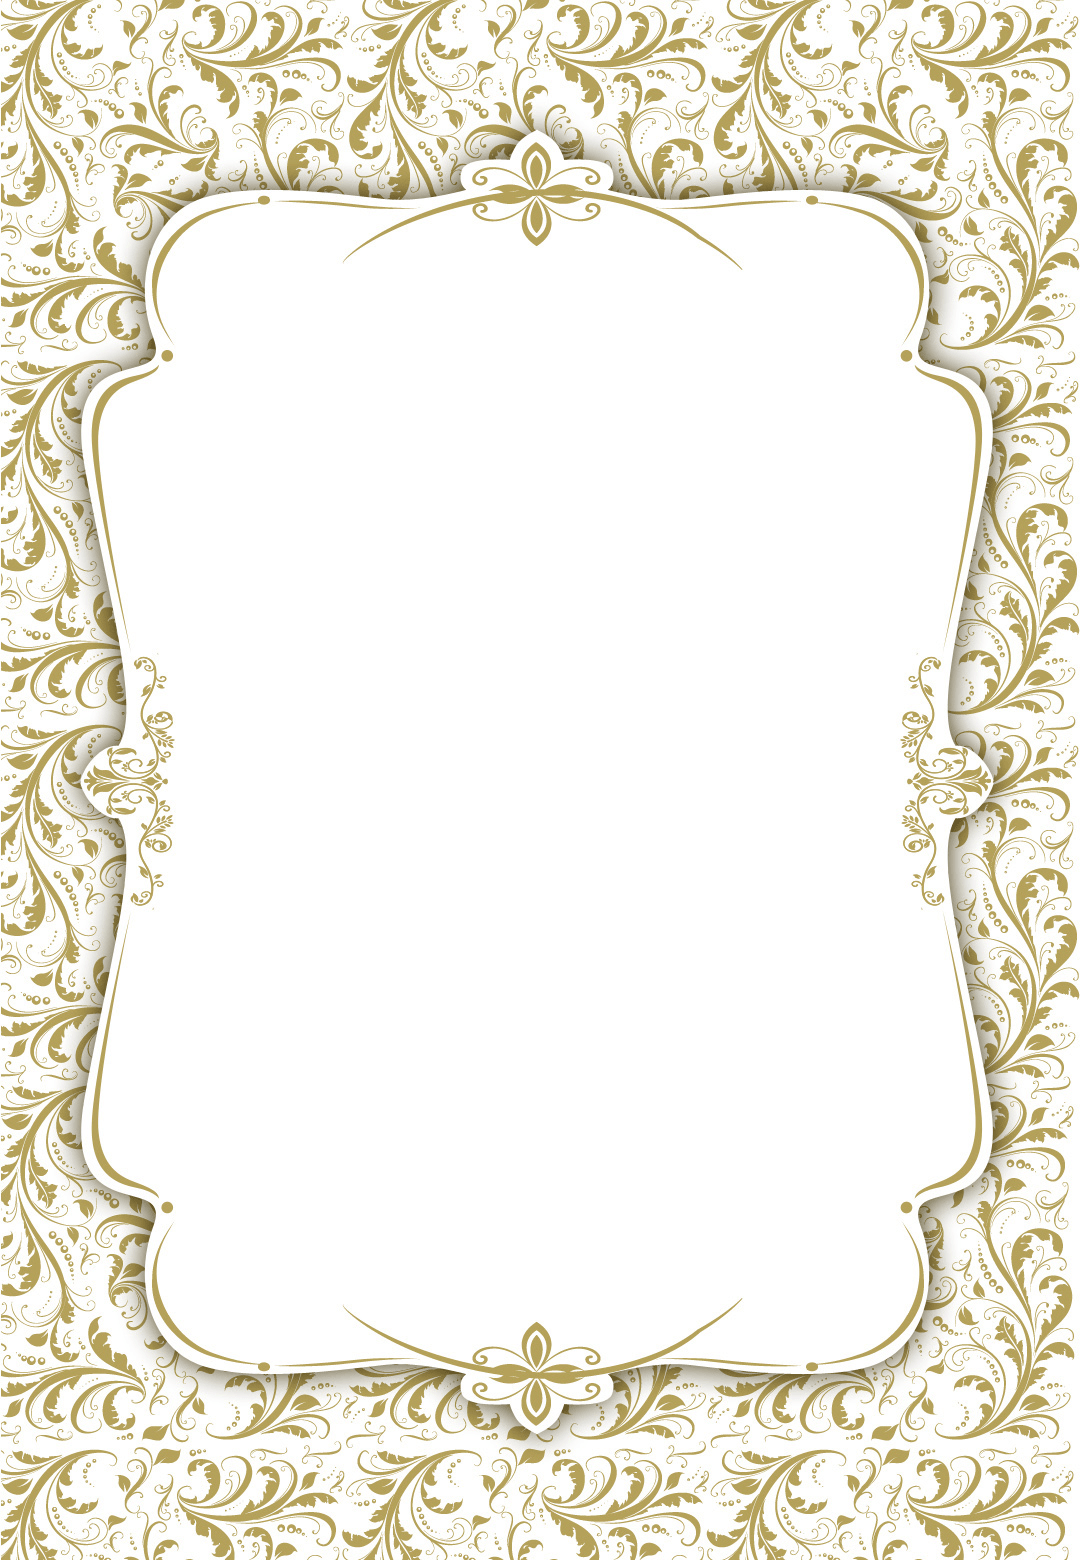 Tasteful Tapestry Frame - Free Printable Wedding Invitation Temp